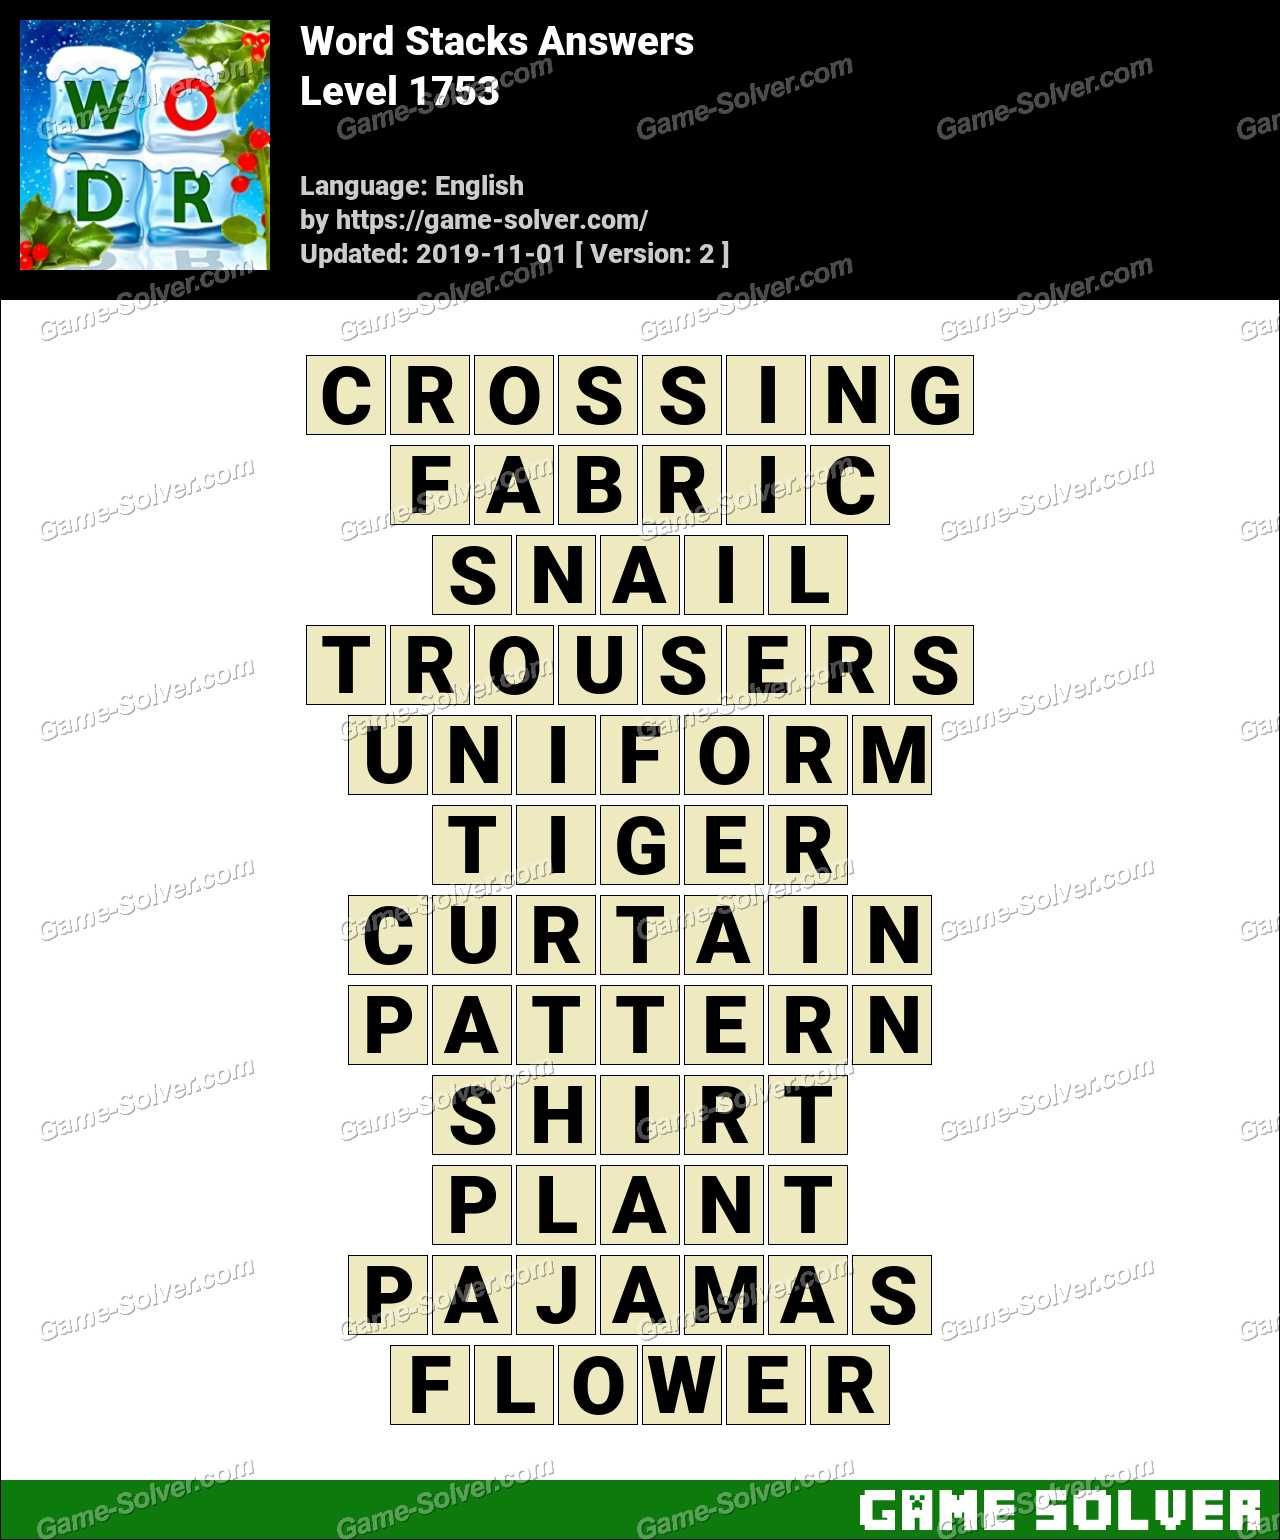 Word Stacks Level 1753 Answers